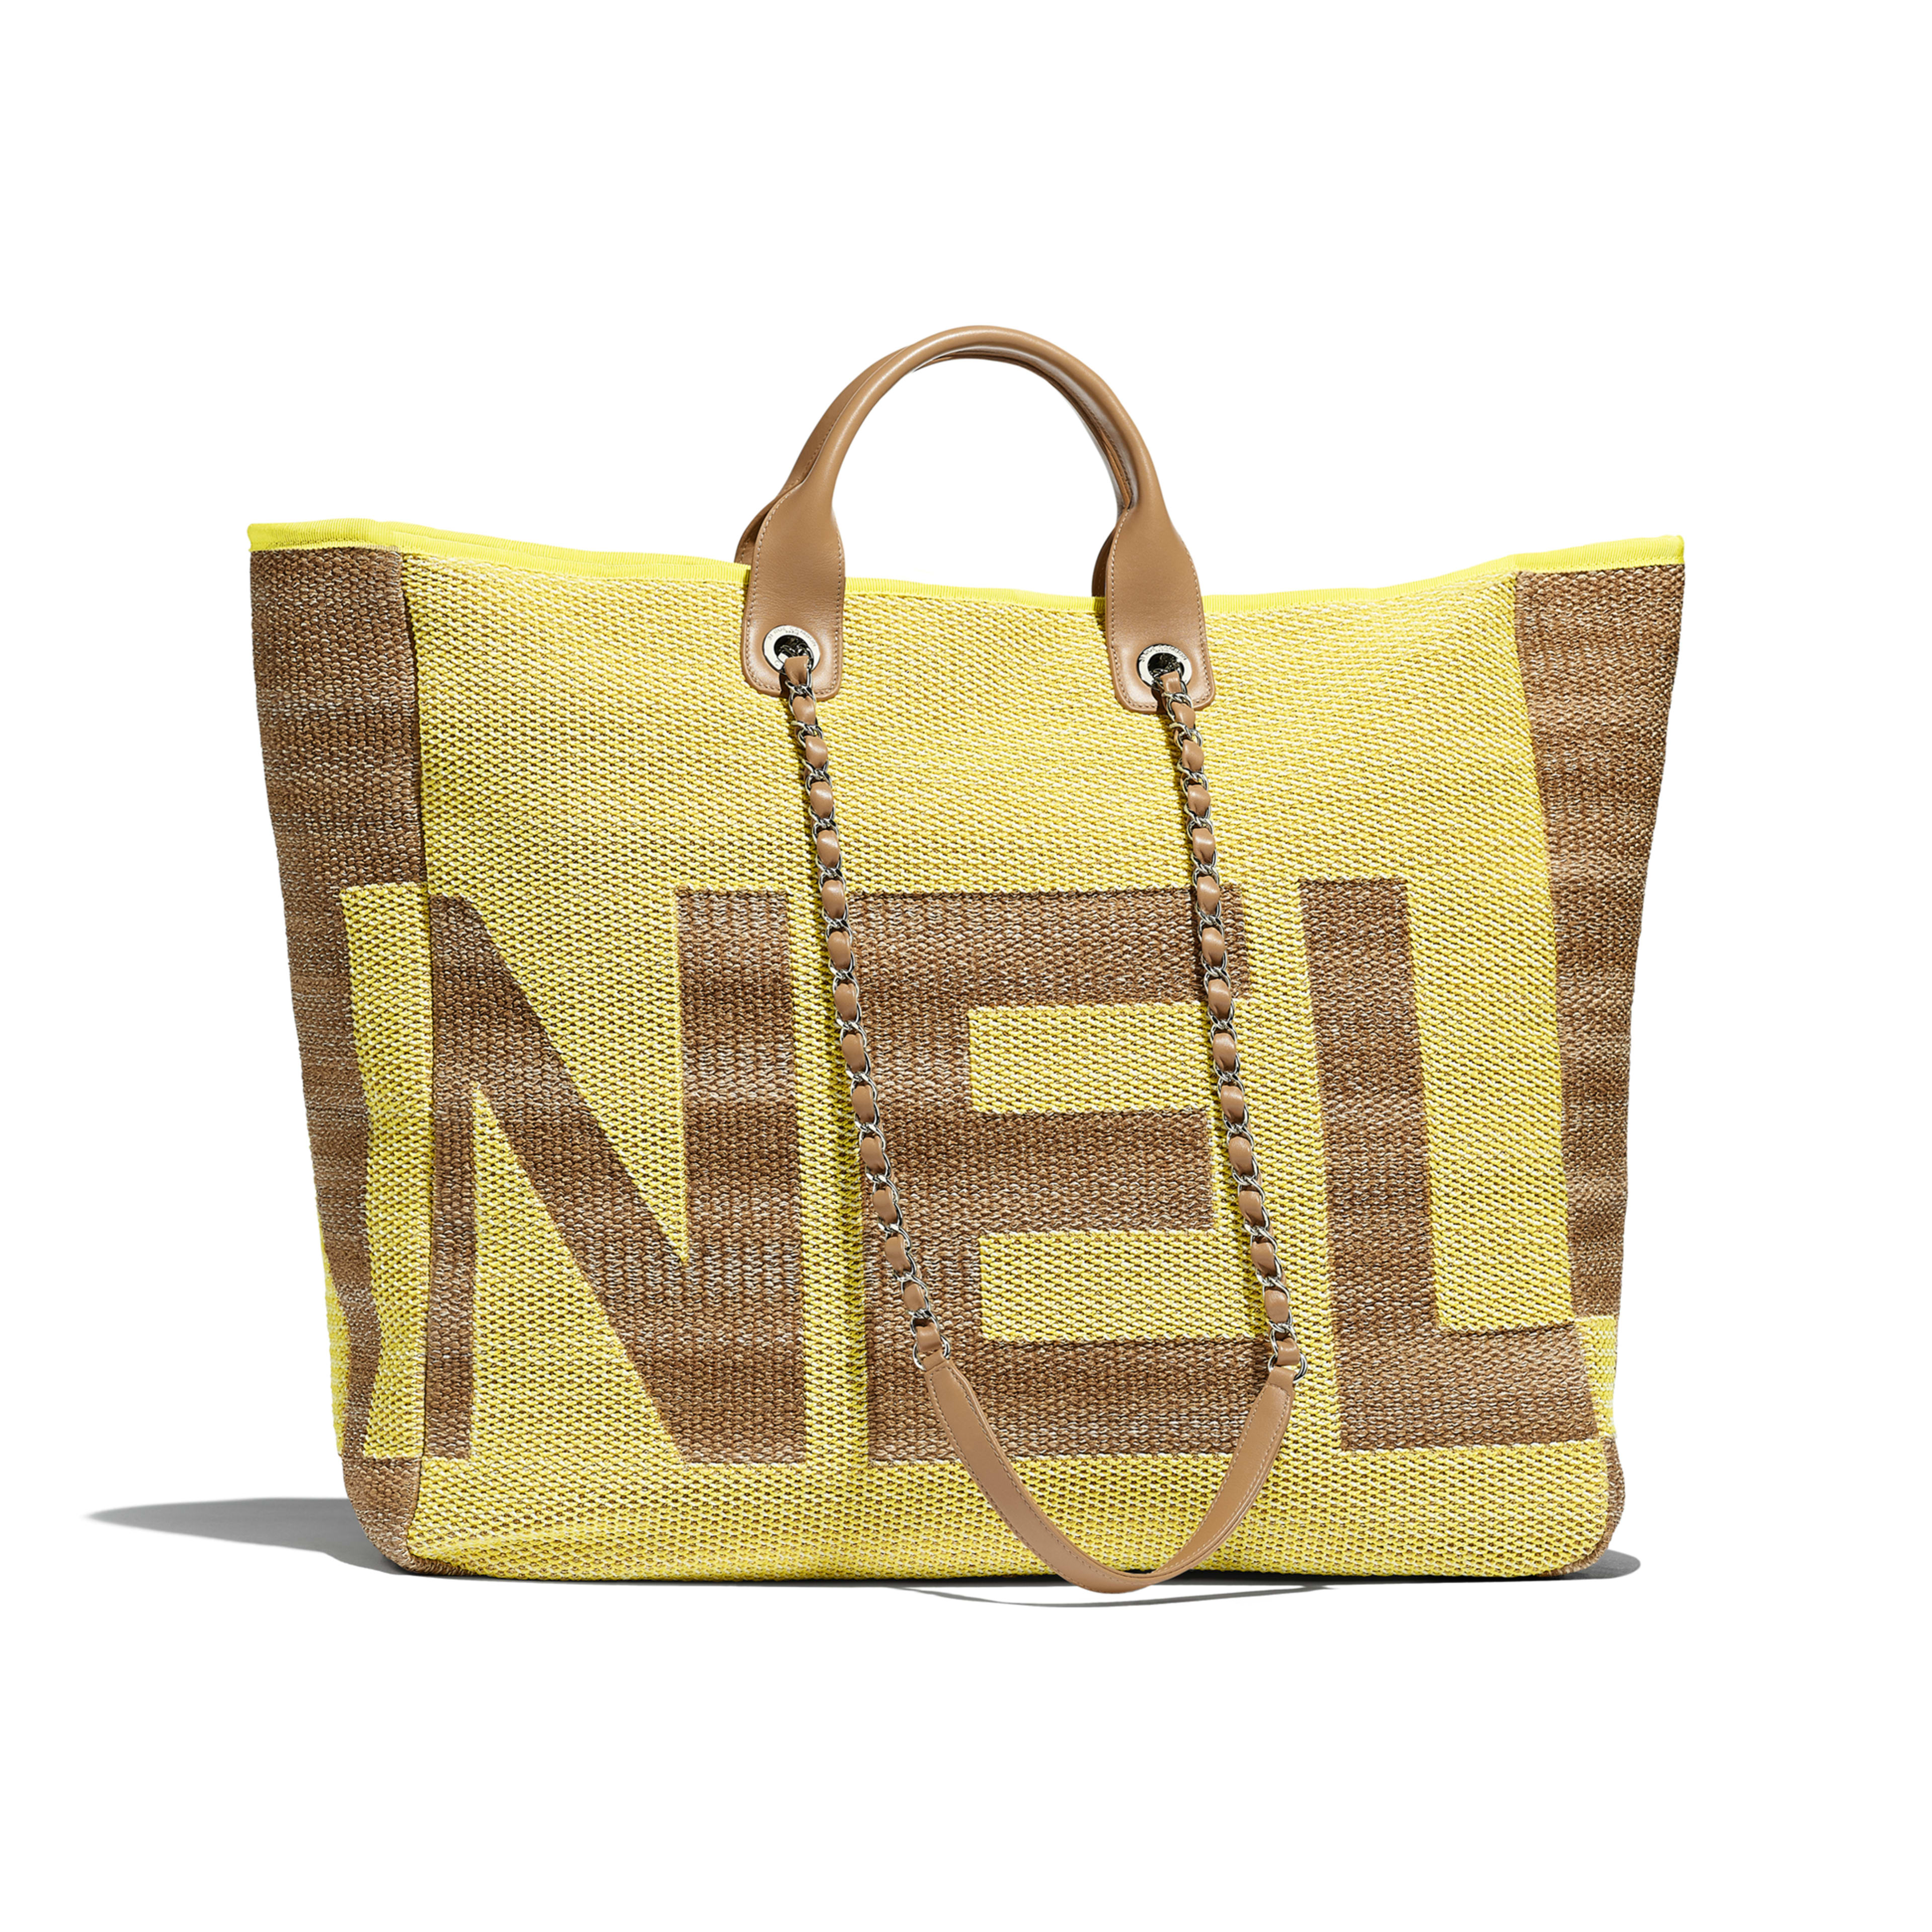 Large Shopping Bag - Yellow & Dark Beige - Mixed Fibers, Viscose, Calfskin & Silver-Tone Metal - Alternative view - see full sized version